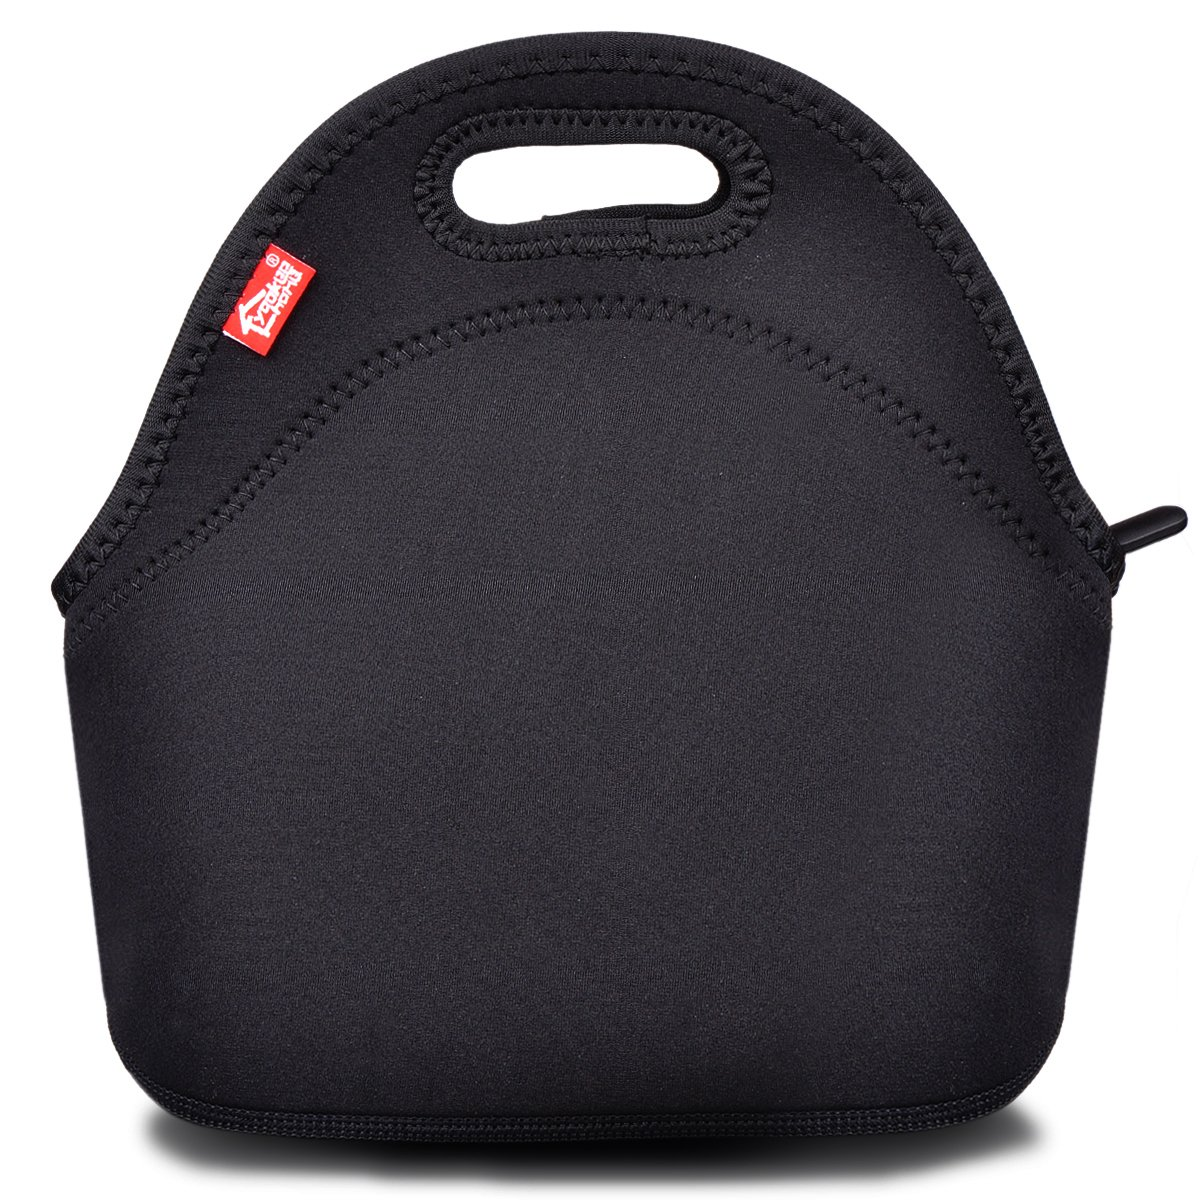 Black Neoprene Lunch Tote, Yookeehome Thick Reusable Insulated Thermal Lunch Bag Small Waterproof Lunch Box Carry Case Handbags Tote with Zipper for Outdoor Travel Picnic by youkee